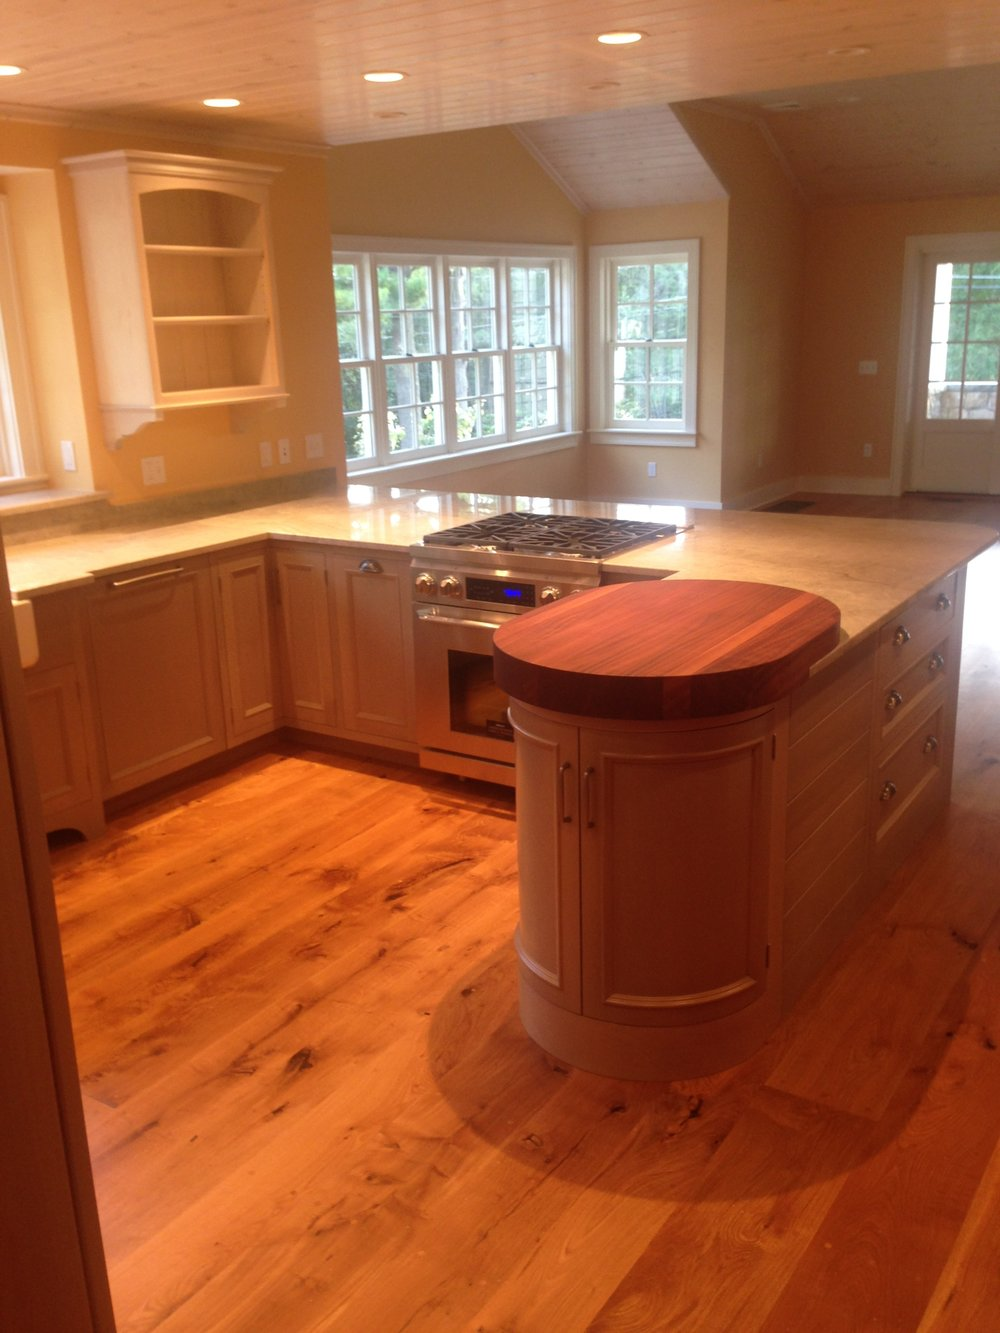 A Cottage Kitchen in Semi-Transparent Sage Lacquer, Quartzite Countertops, and Whitewashed Uppers 4.jpg